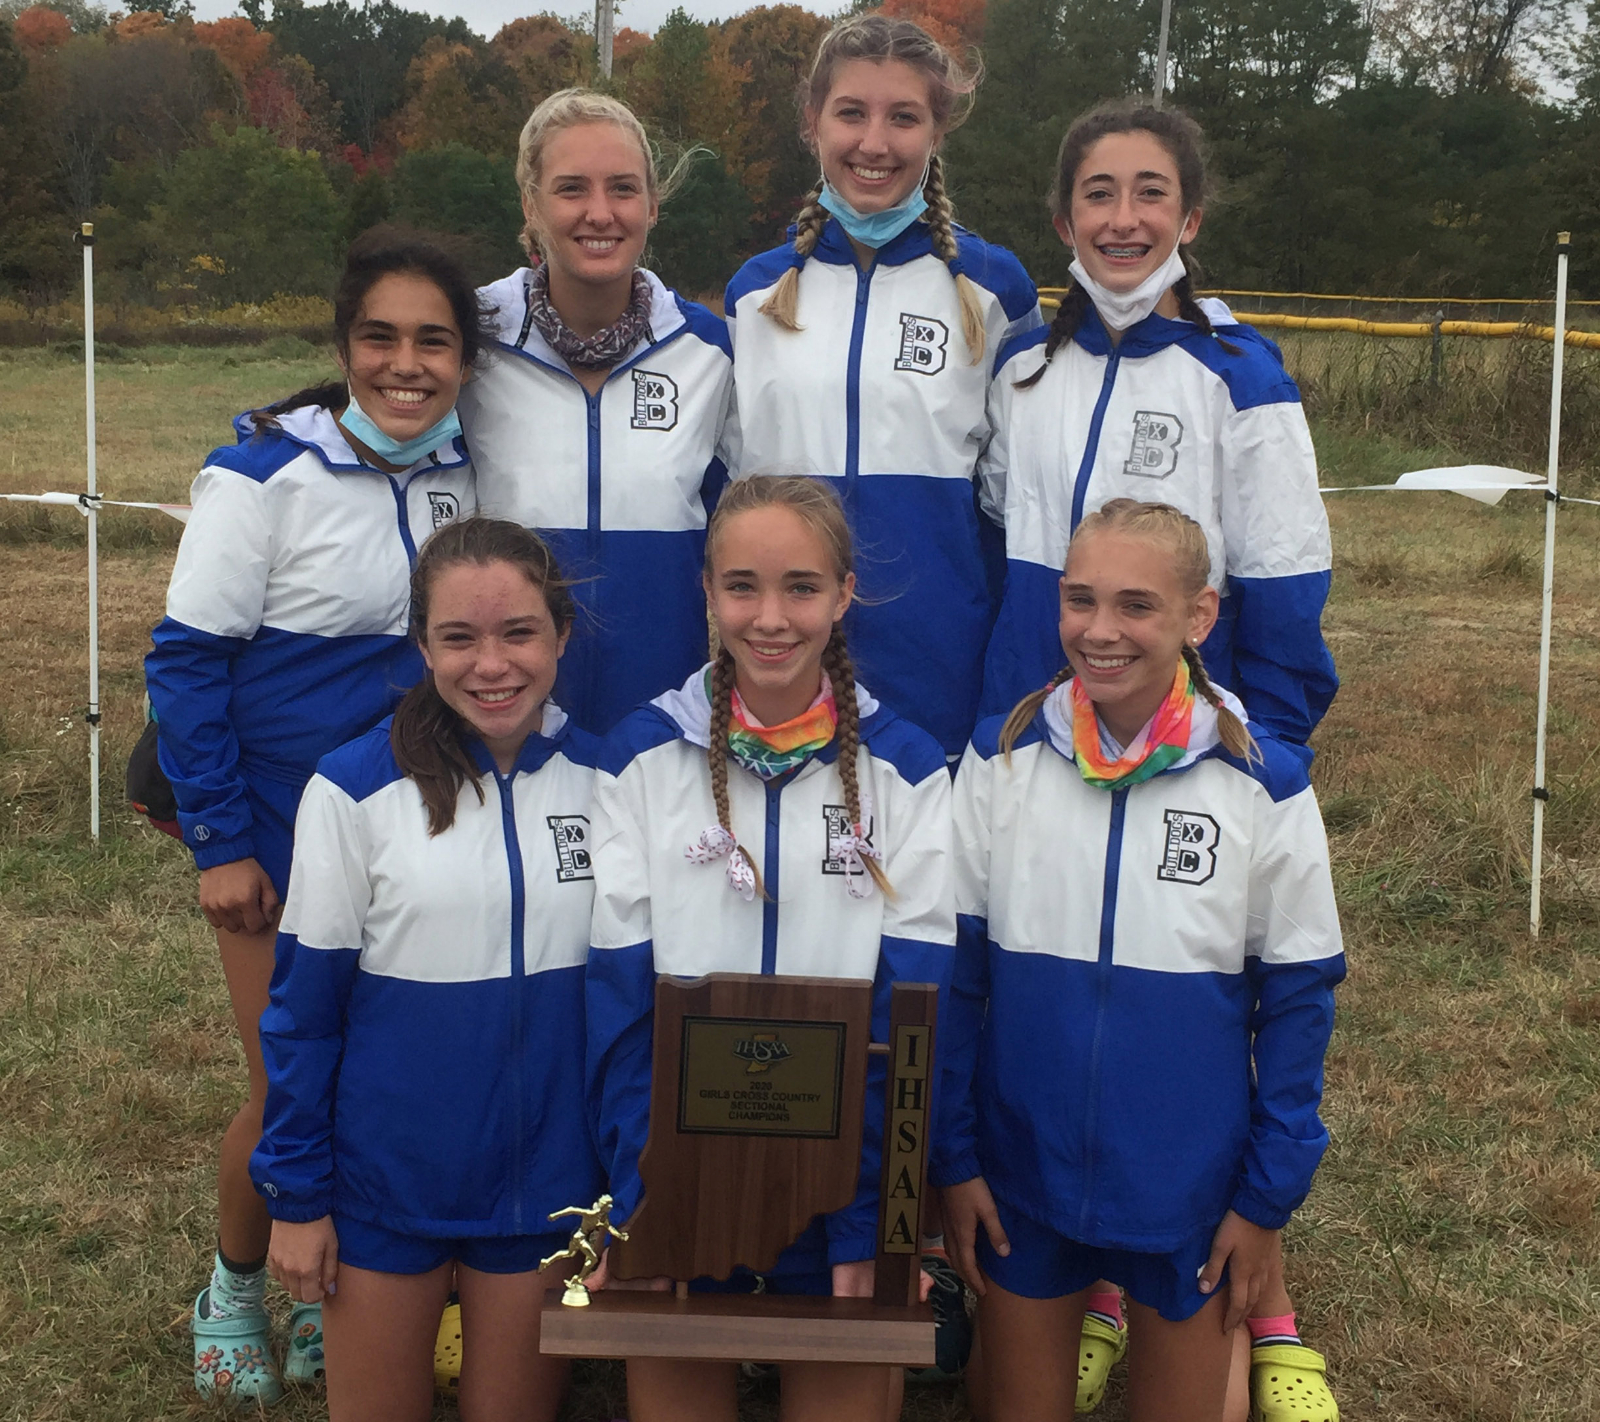 BHS runners sweep sectional team titles